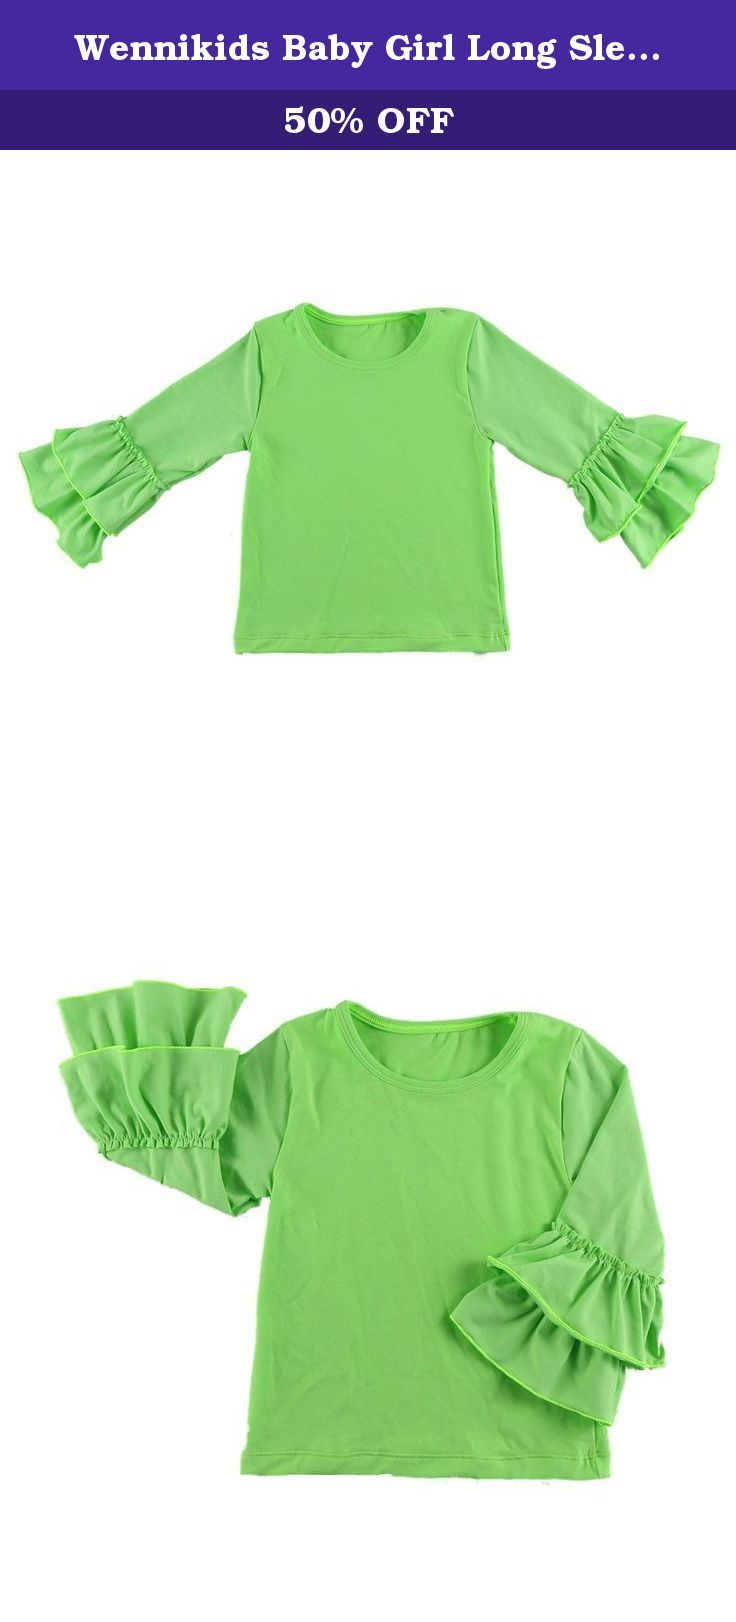 Wennikids Baby Girl Long Sleeve Shirt Tops with Ruffles 1-5t in Various Colors (5T, Lime). Material:Cotton Size:S,M,L,XL,XXL 5 sizes for 1-5T Long Sleeves With Double Ruffles 14 Colors Total.